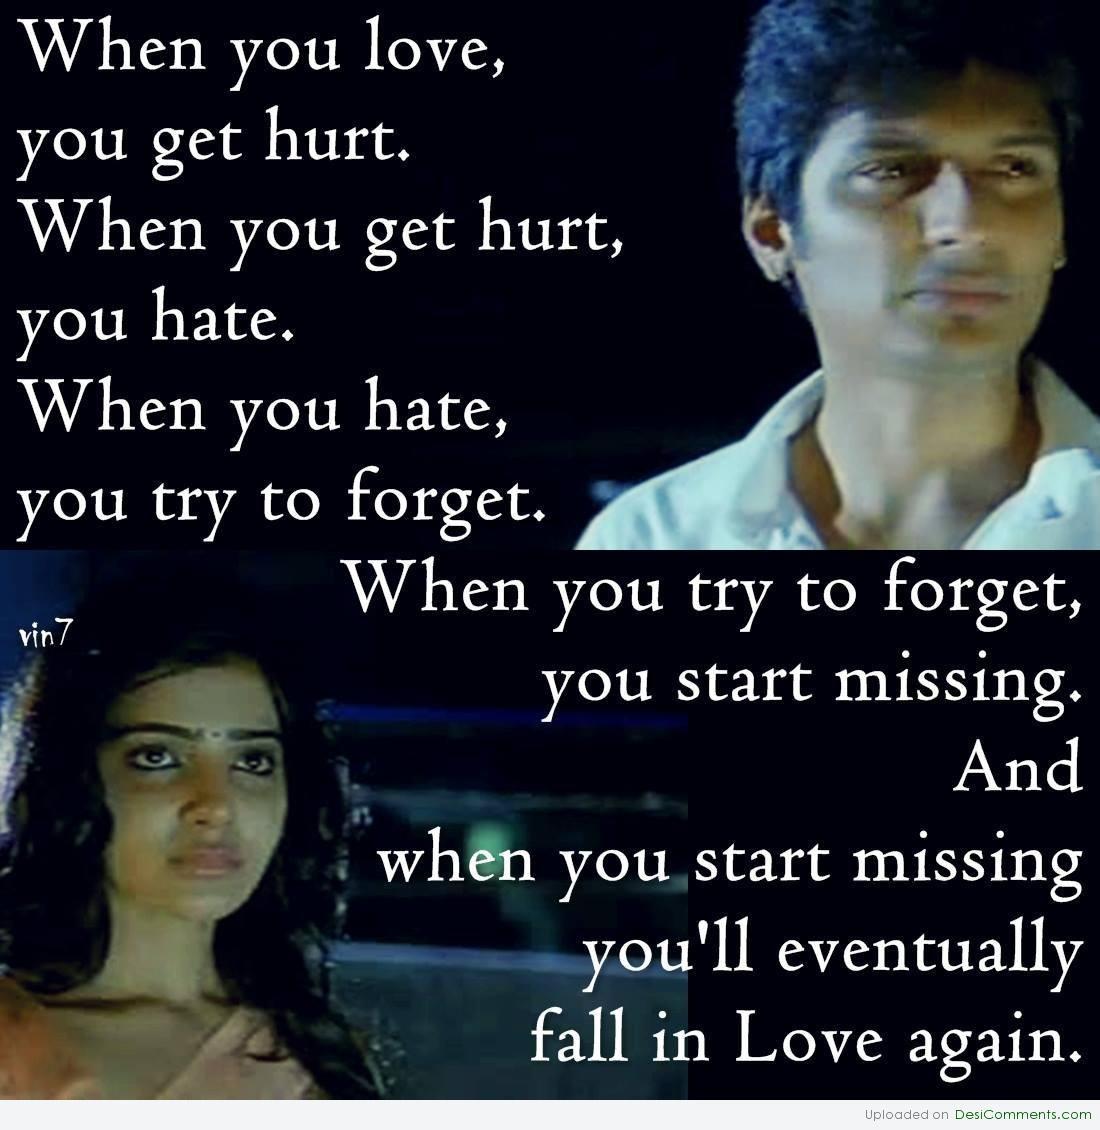 Tamil Love Quotes : Tamil Movie Love Quotes. QuotesGram